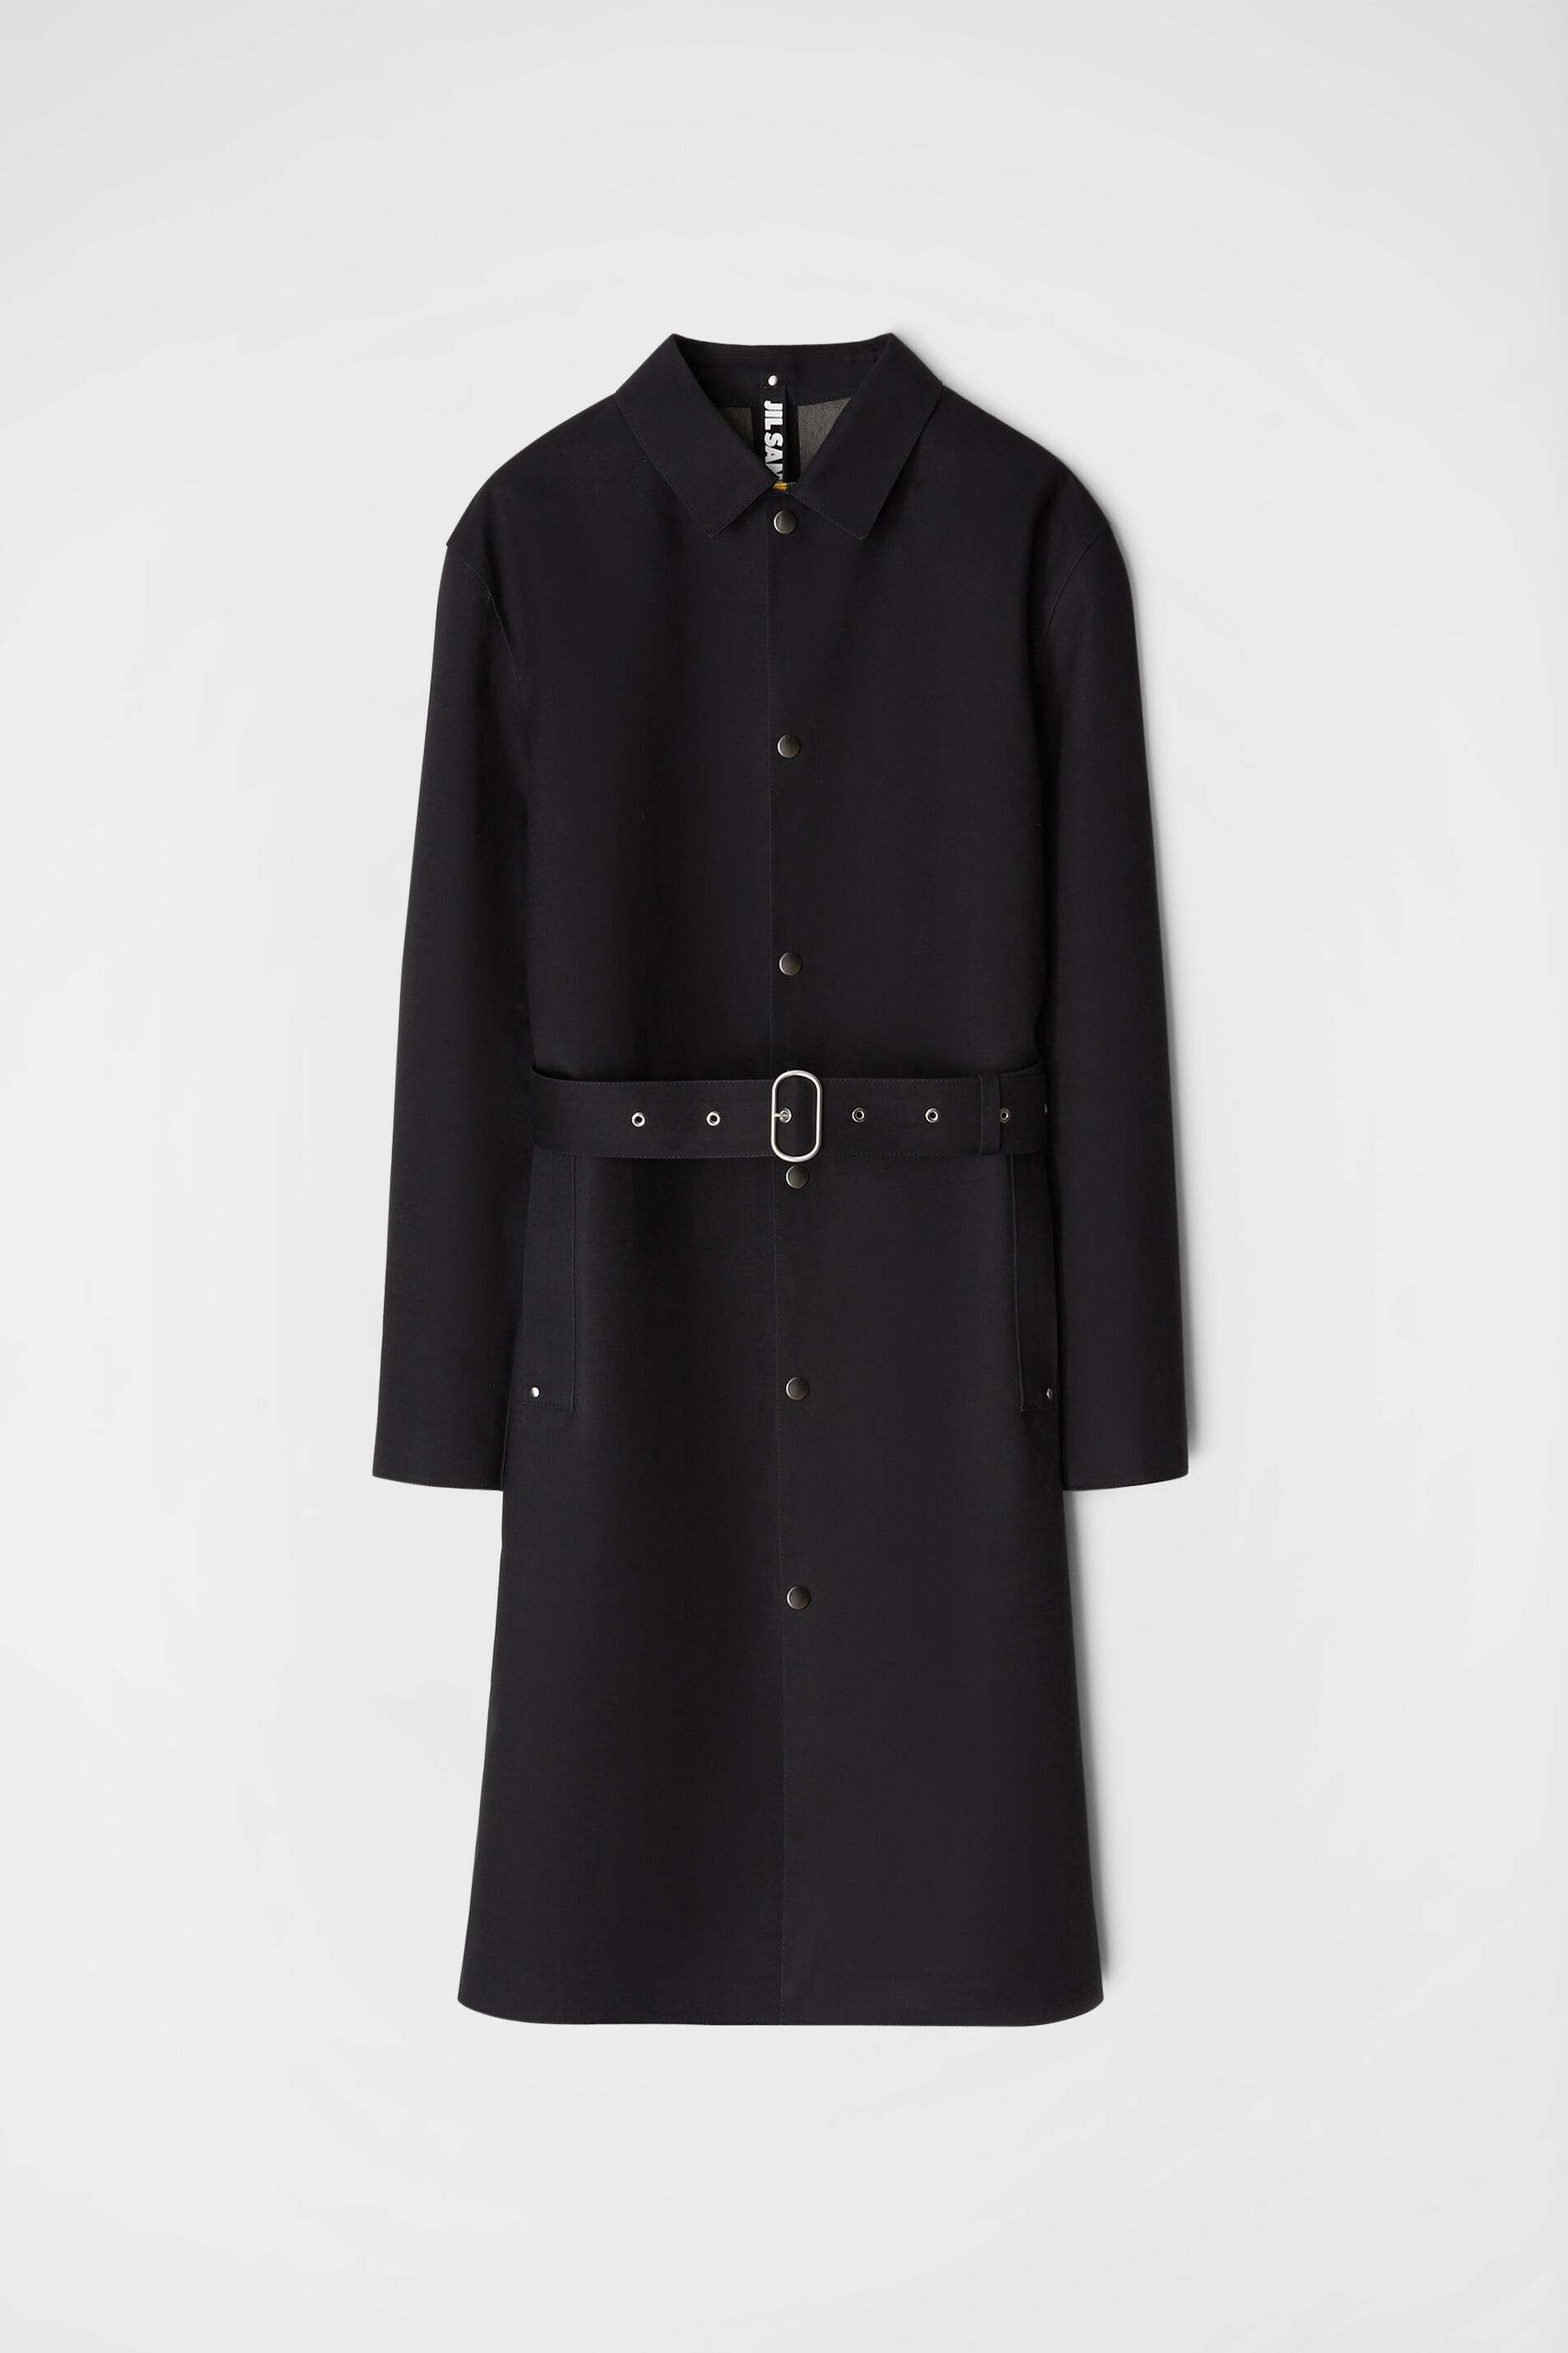 Mackintosh Trench, black, large